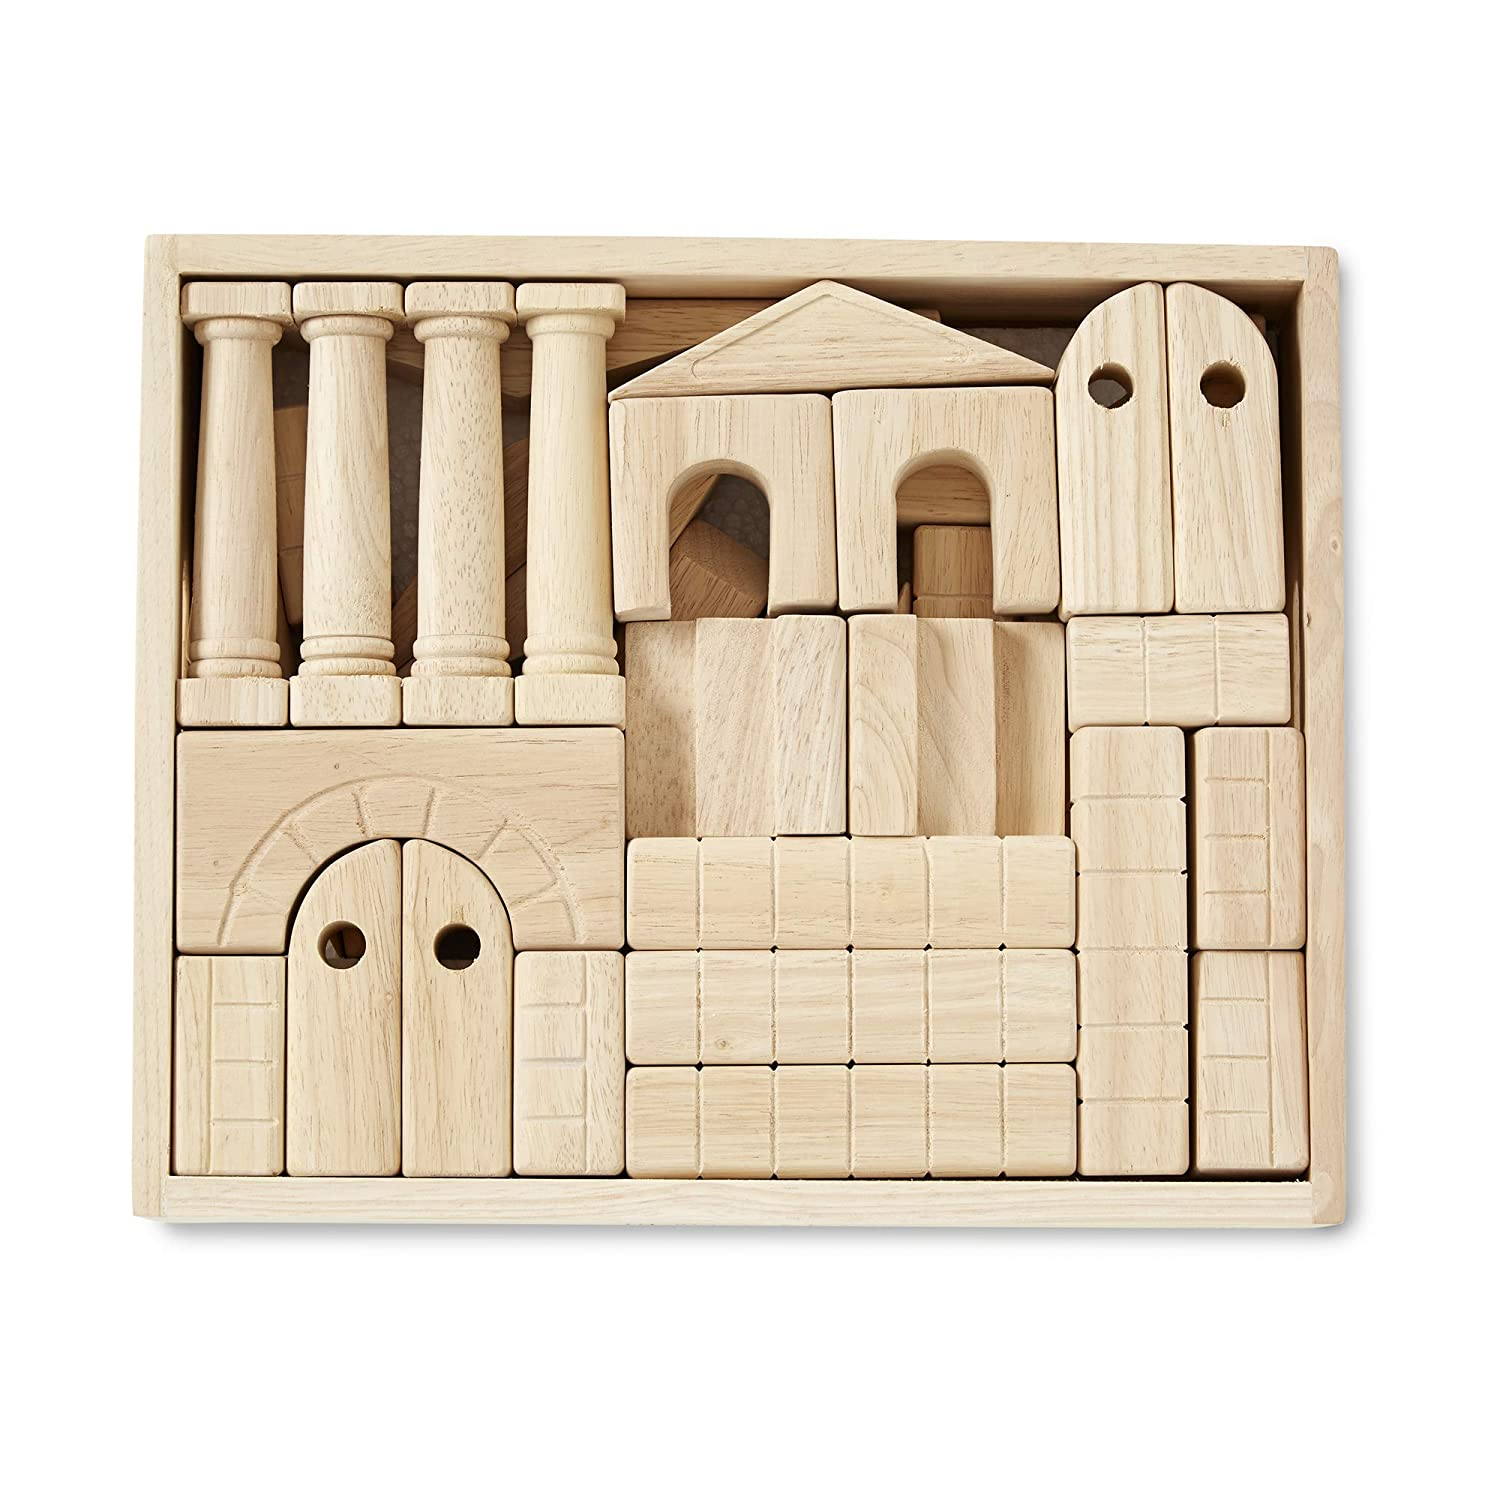 Melissa & Doug Architectural Unit Blocks (44 Building Blocks in 11 Shapes, Solid Wood, Great Gift for Girls and Boys – Best for 3, 4, 5, 6, 7 and 8 Year Olds)